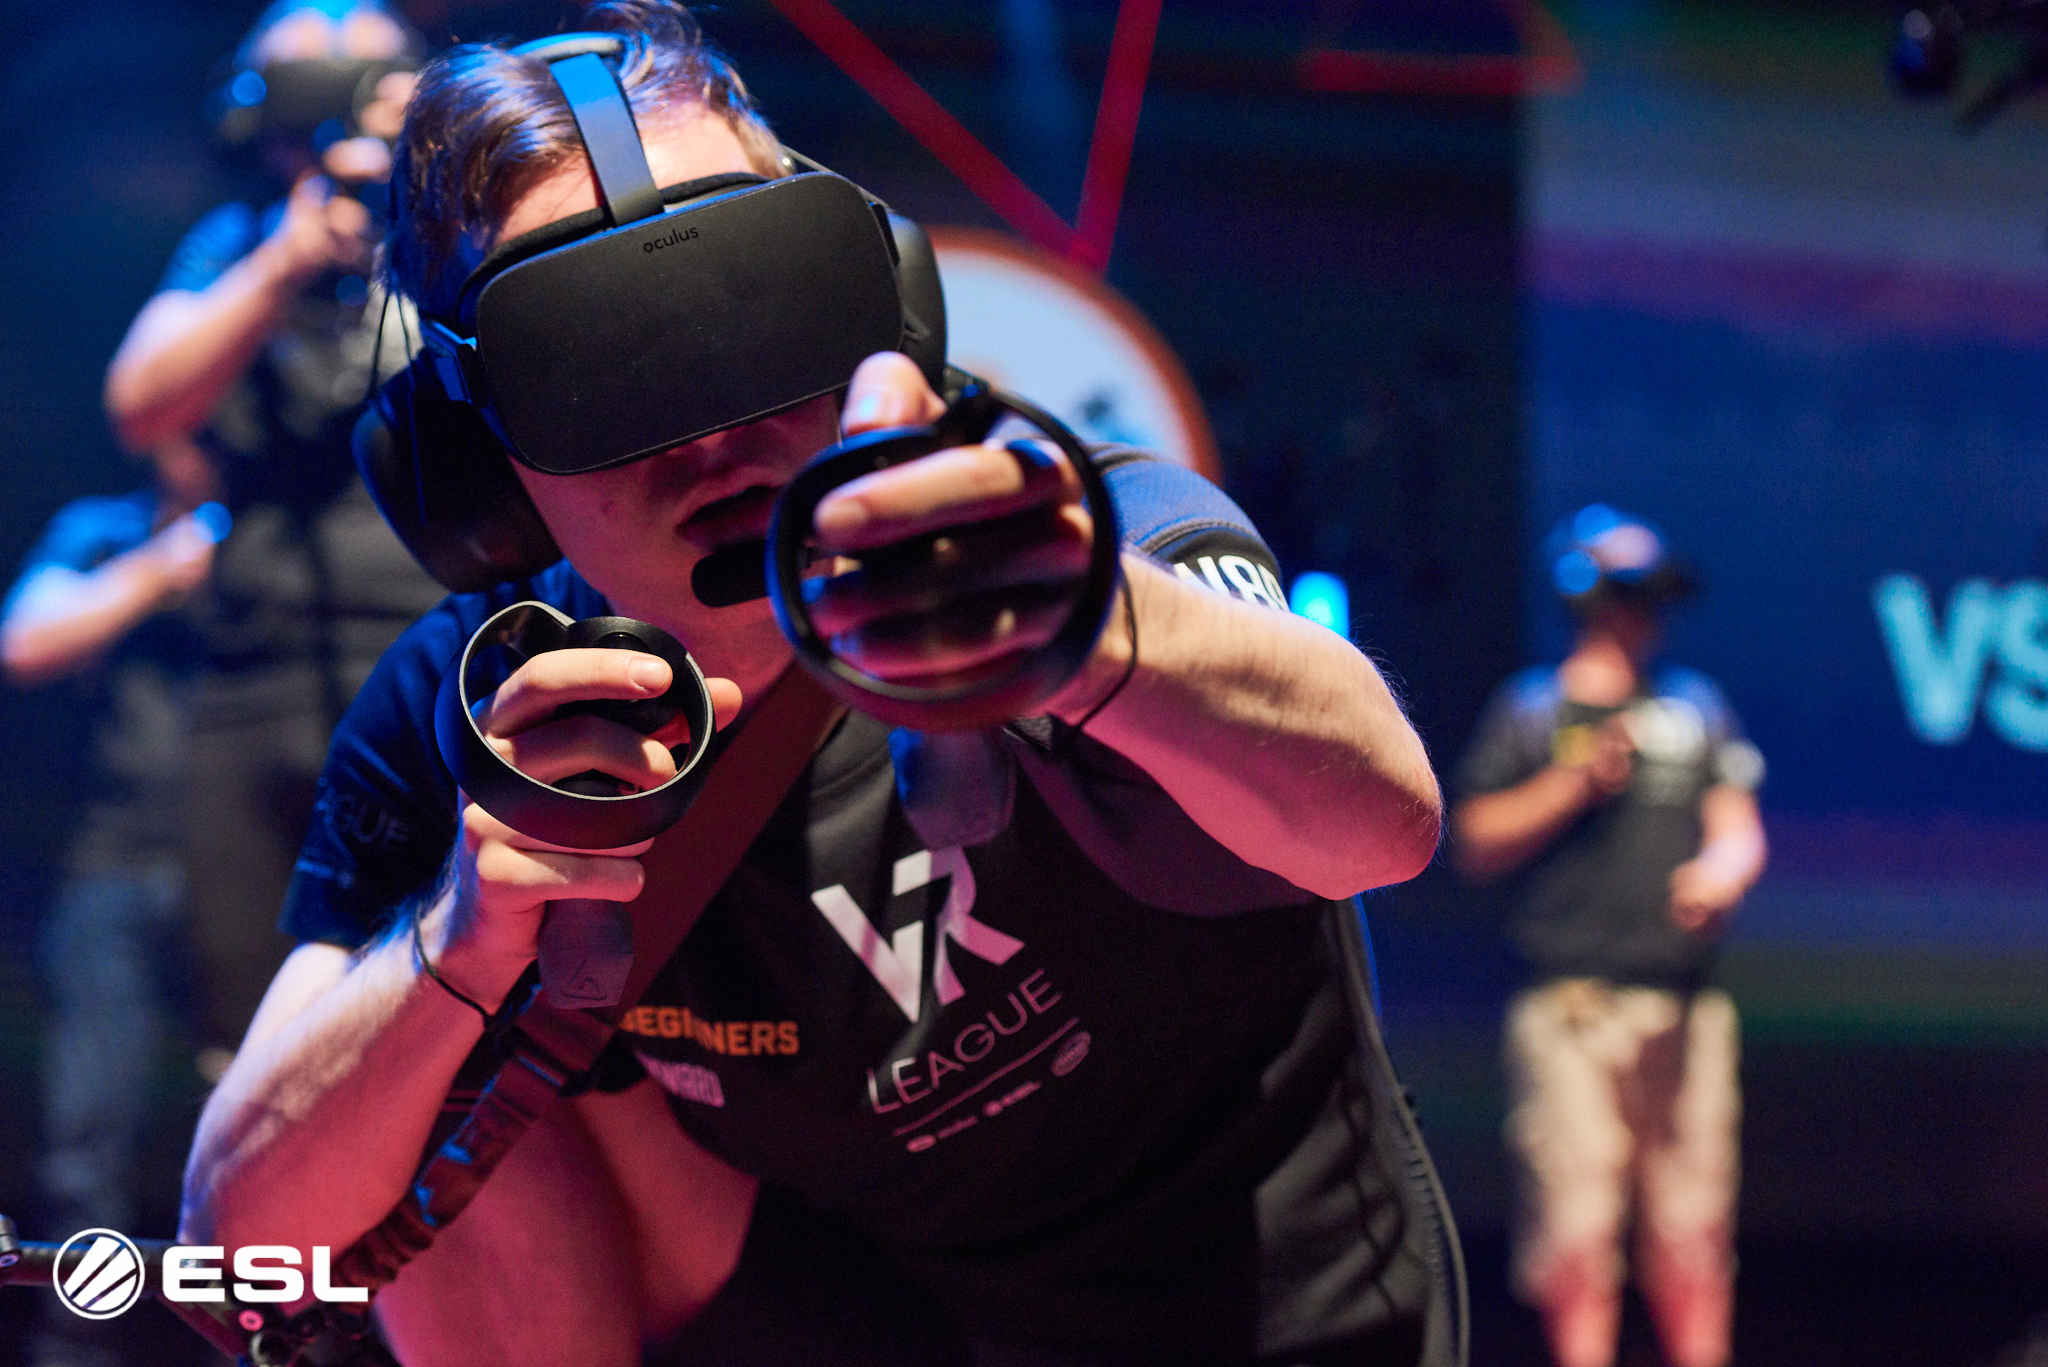 VR-League-ESL-Oculus-Echo-Combat-Echo-Arena-Onward-Space-Junkies-vSports-eSports